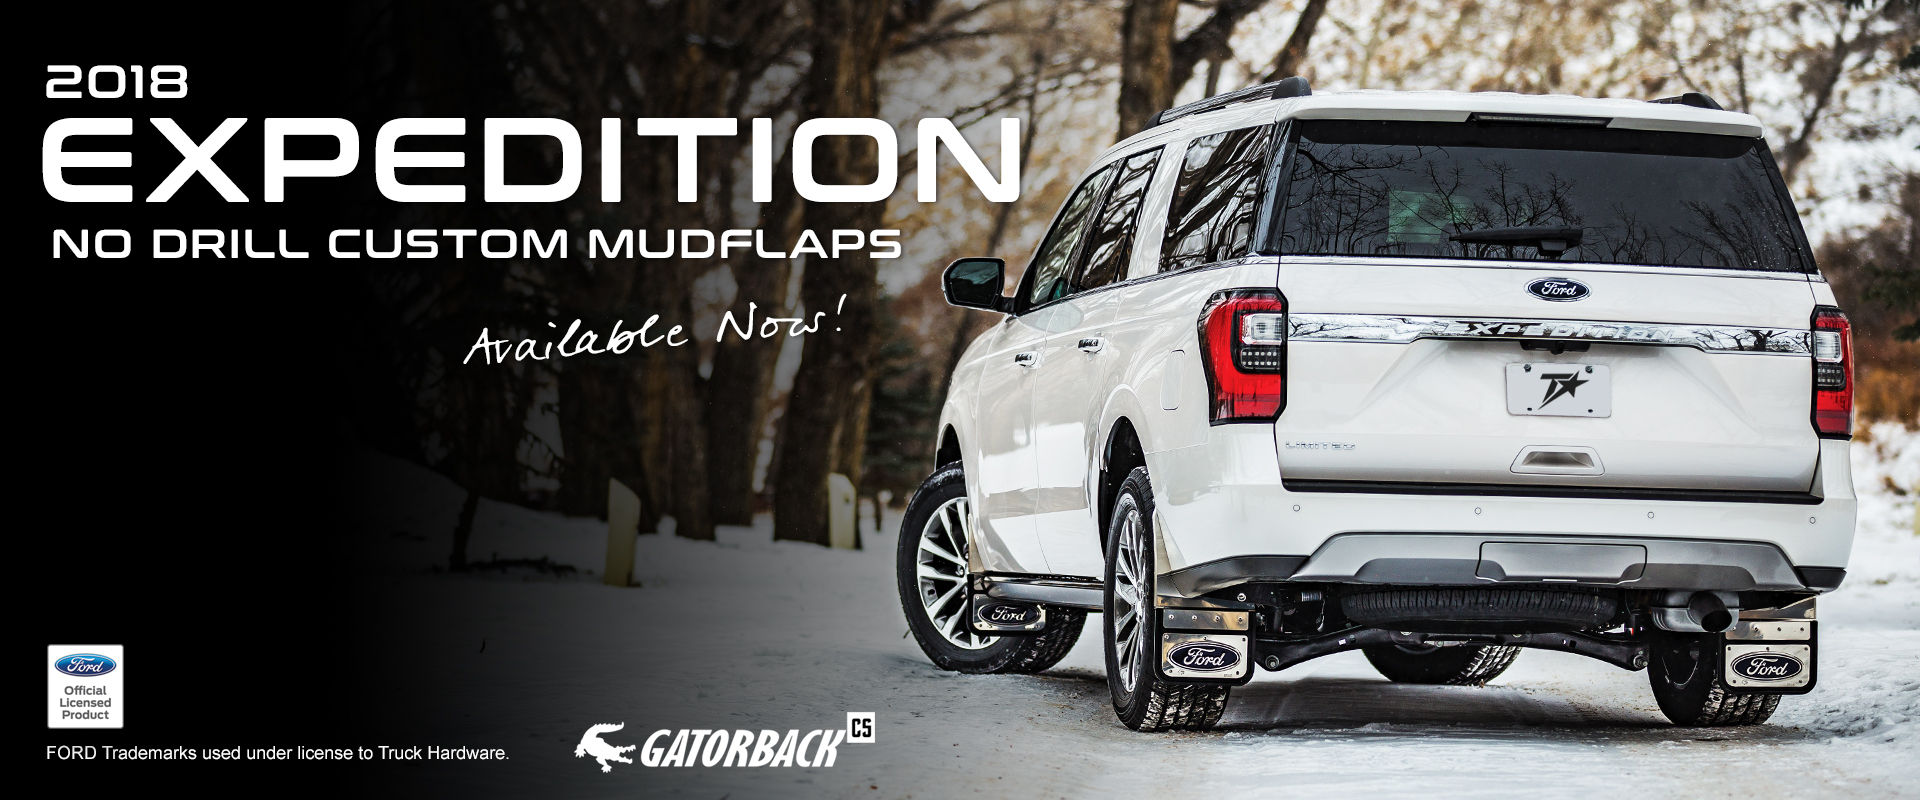 Gatorback CR Mud Flaps for 2018 Ford Expedition